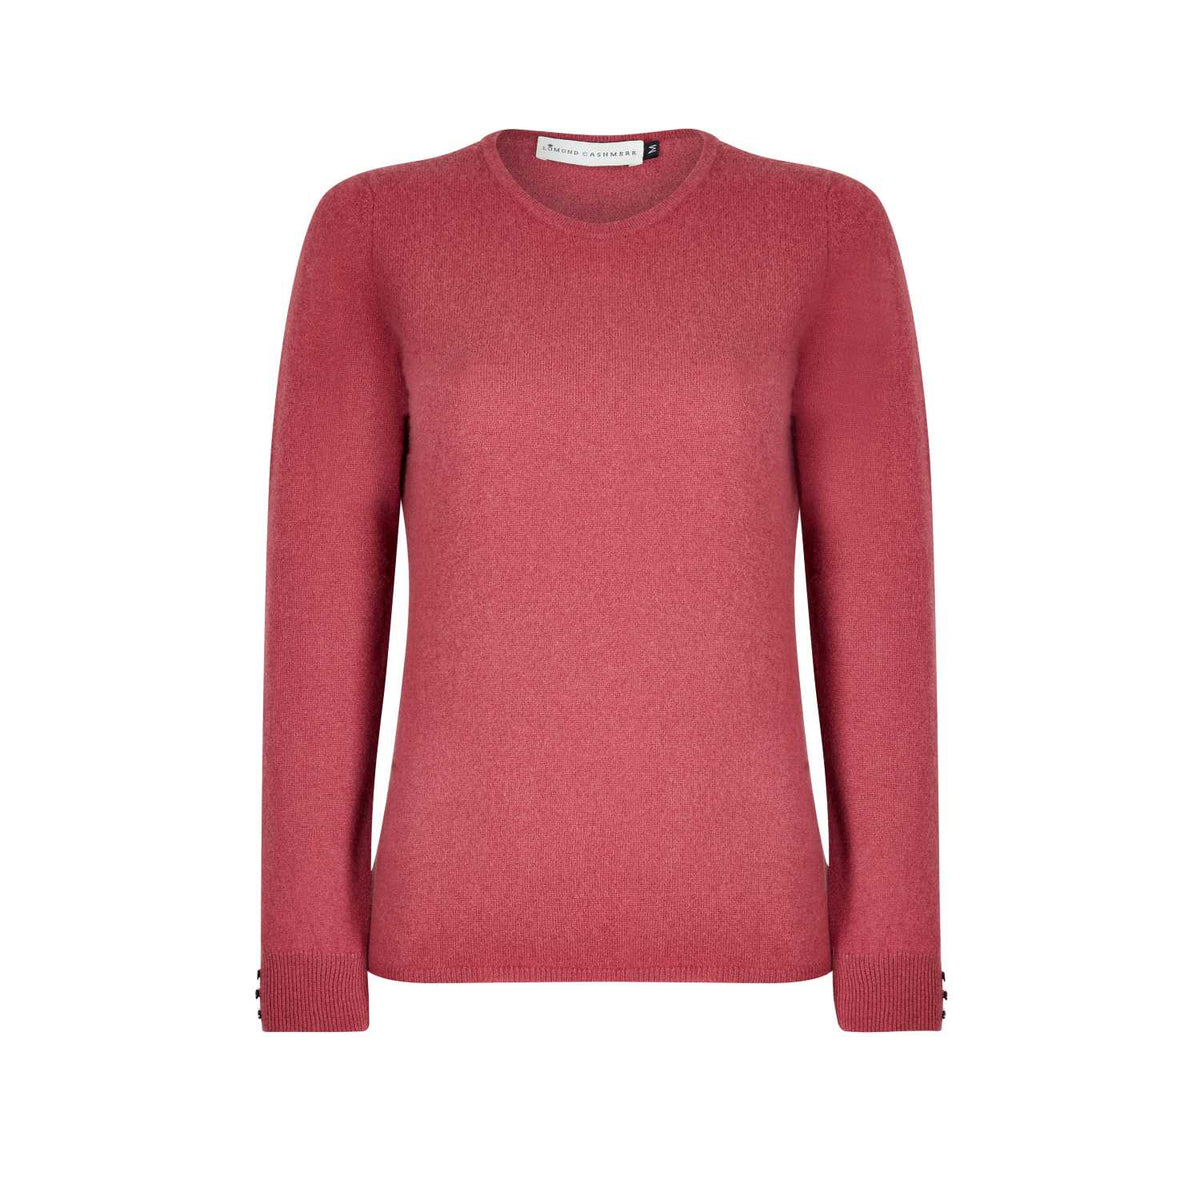 Lomond Cashmere | Ladies 2-Ply Cashmere Round Neck | Rosewood Pink | Shop now at The Cashmere Choice | London